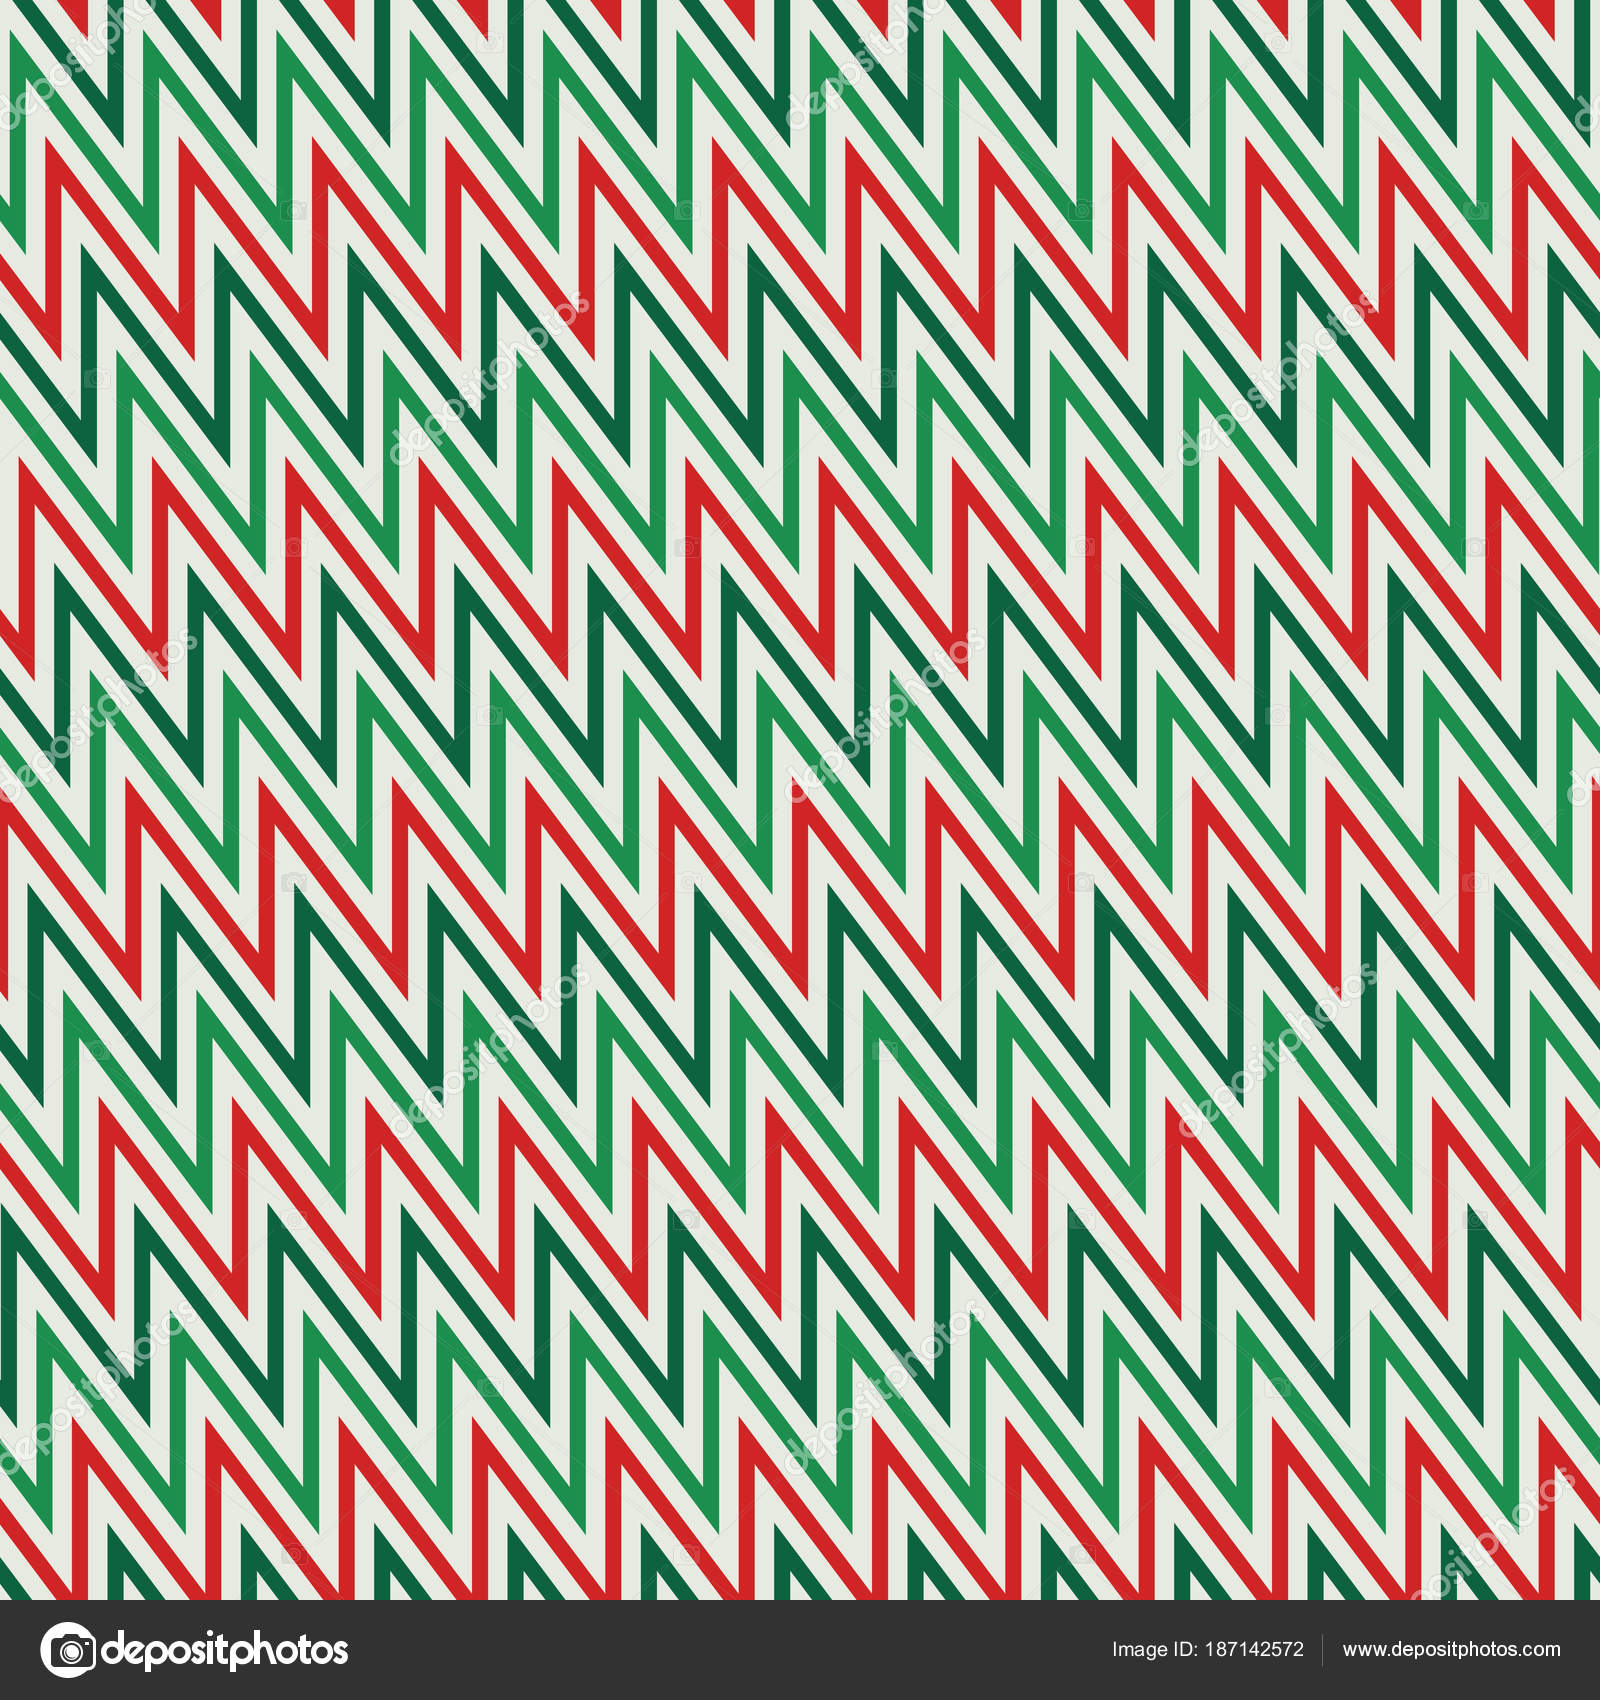 Seamless Pattern In Christmas Traditional Colors Zigzag Horizontal Lines Wallpaper Vivid Digital Paper Textile Print Page Fill